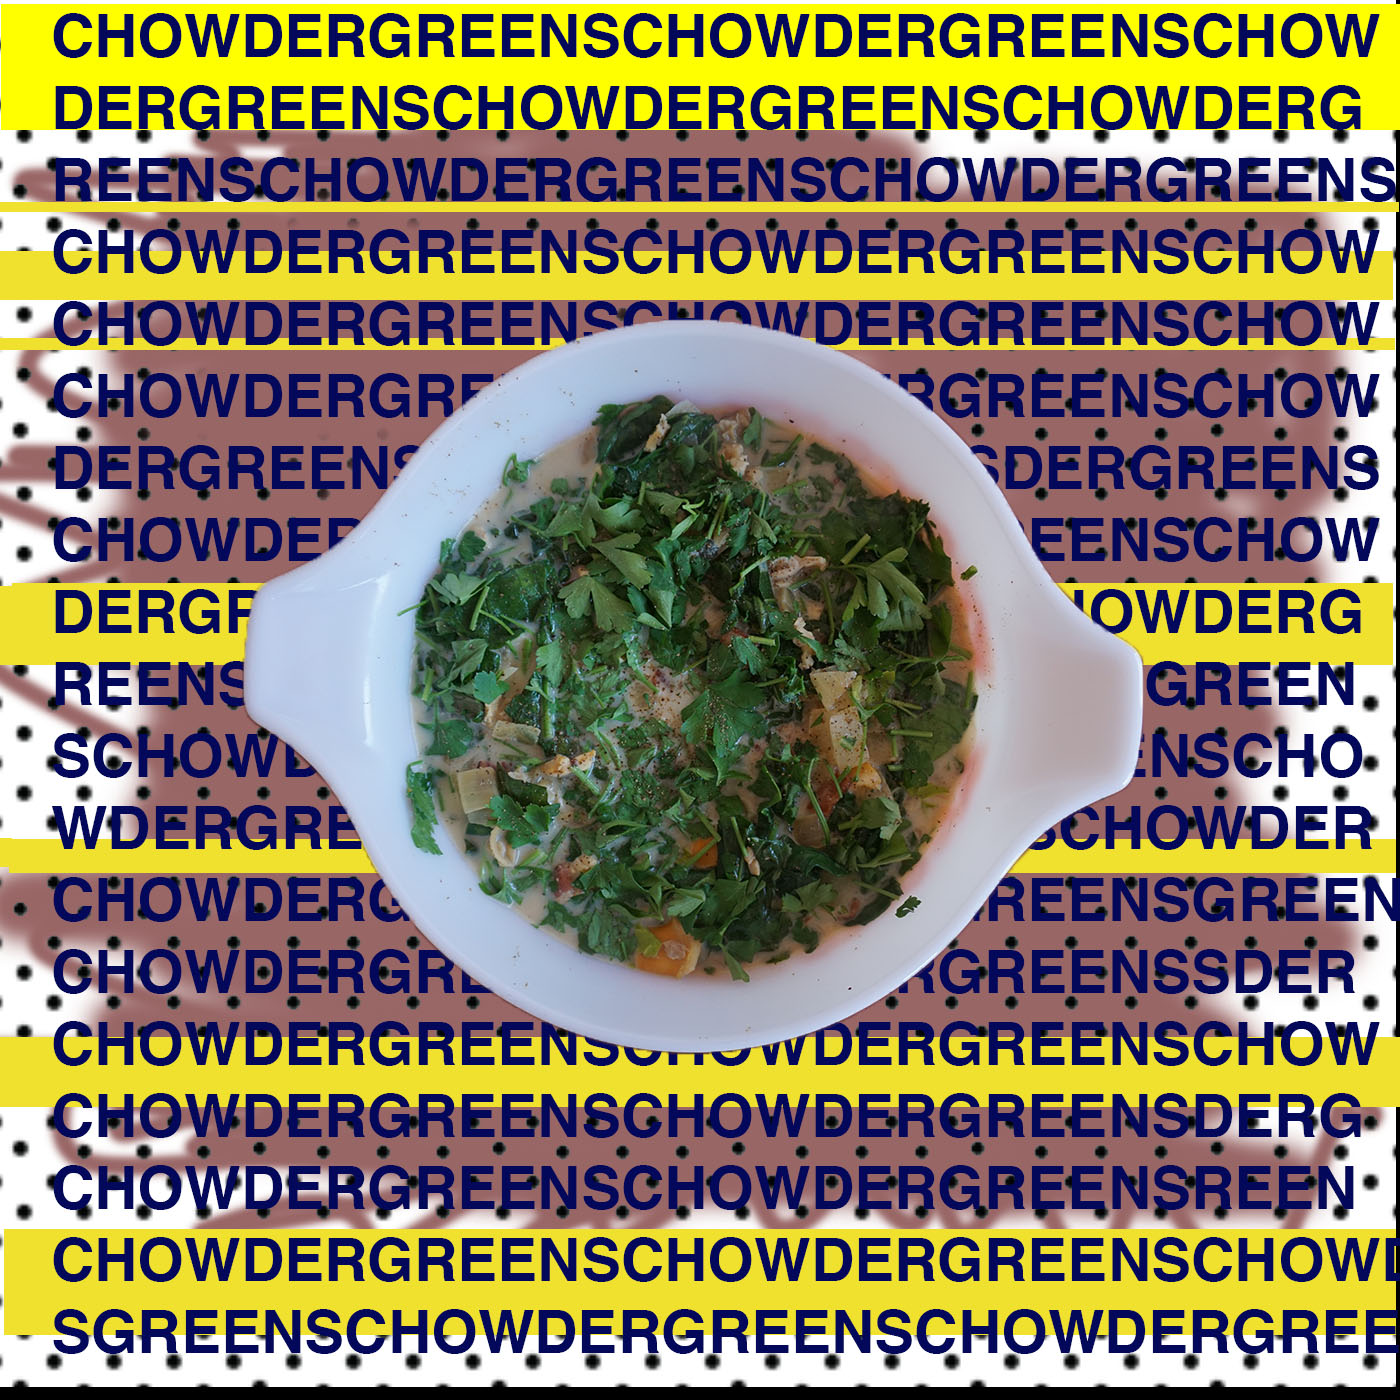 CHOWDER GREENS      1         Bunch Collard Greens///cleaned and rough chopped  1         Bunch Lacinato Kale///cleaned and rough chopped  1 #         Baby (or regular) Spinach   1/2 #     Bacon////diced   12         little neck clams   2         White Onions//////large dice  2         Garlic, cloves//////minced  8 oz        Clam Juice  1#        Raw Chopped Clams (the frozen ones)  1 cup    Heavy Cream  1 bunch     Parsley, rough chopped  LOTS    fresh cracked black pepper     EXTRA VIBES::::OYSTER CRACKERS:::::::     Steam open in the clams in a little bit of water in a pot. Or a crock pot if you are into that. I am. So that's what I did.      Strain the liquid and save it to use later in the recipe.      Let the clams cool and take them out of the shells and chop them up, big pieces are good.     Render the bacon in the crock pot/// slow cooker ///instant pot///multi cooker/// regular pot on browning///sautee temperature.      Once its browned add the onions and garlic and cook until they are lightly caramelized and softened.      Then add the greens, starting with the collards, then the lamcinato and keep stirring until its all wilted and then add the spinach.      Add the clam juices, and the bottled clam juice. Just to cover the greens and let it come up to a boil and stir it around.      Add the raw chopped clams and stir it around and cook for a minute or two.      Add the Heavy cream and cook for a few minutes.      Crack lots of black pepper and give it a taste. Should be pretty good.      Finish with the parsley.      BONUS CHOWDER GREEN STATUS:     Top with oyster crackers and serve.      Or top with oyster crackers and throw it in the oven for a few.      You can make this as a side dish OR you can cook some raviolis and use the chowder greens AS THE SAUCE FOR THE RAVIOLI! I did it the other night.      It's true.